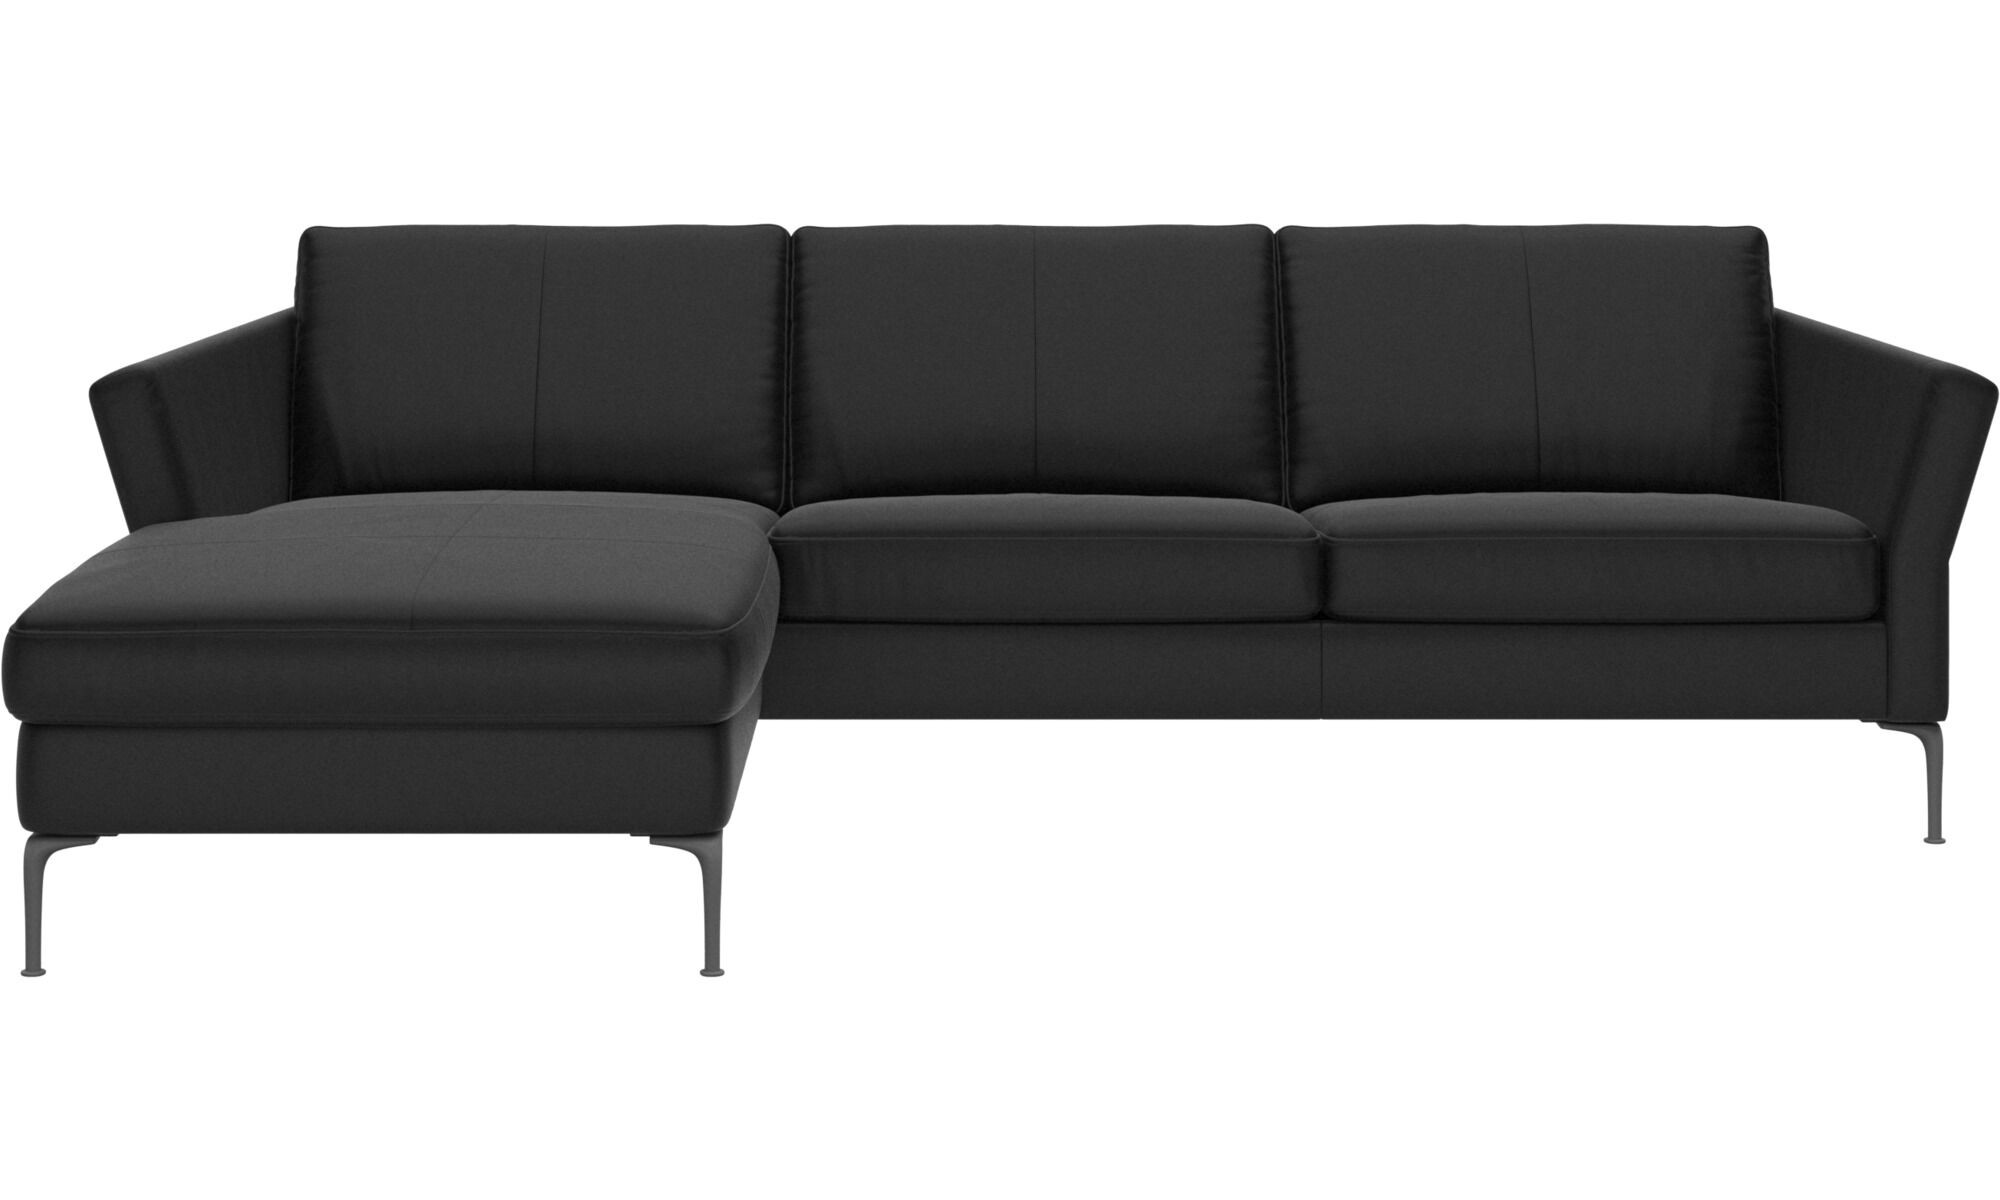 black leather sofa living room sets designs sofas contemporary design from boconcept chaise longue marseille with resting unit